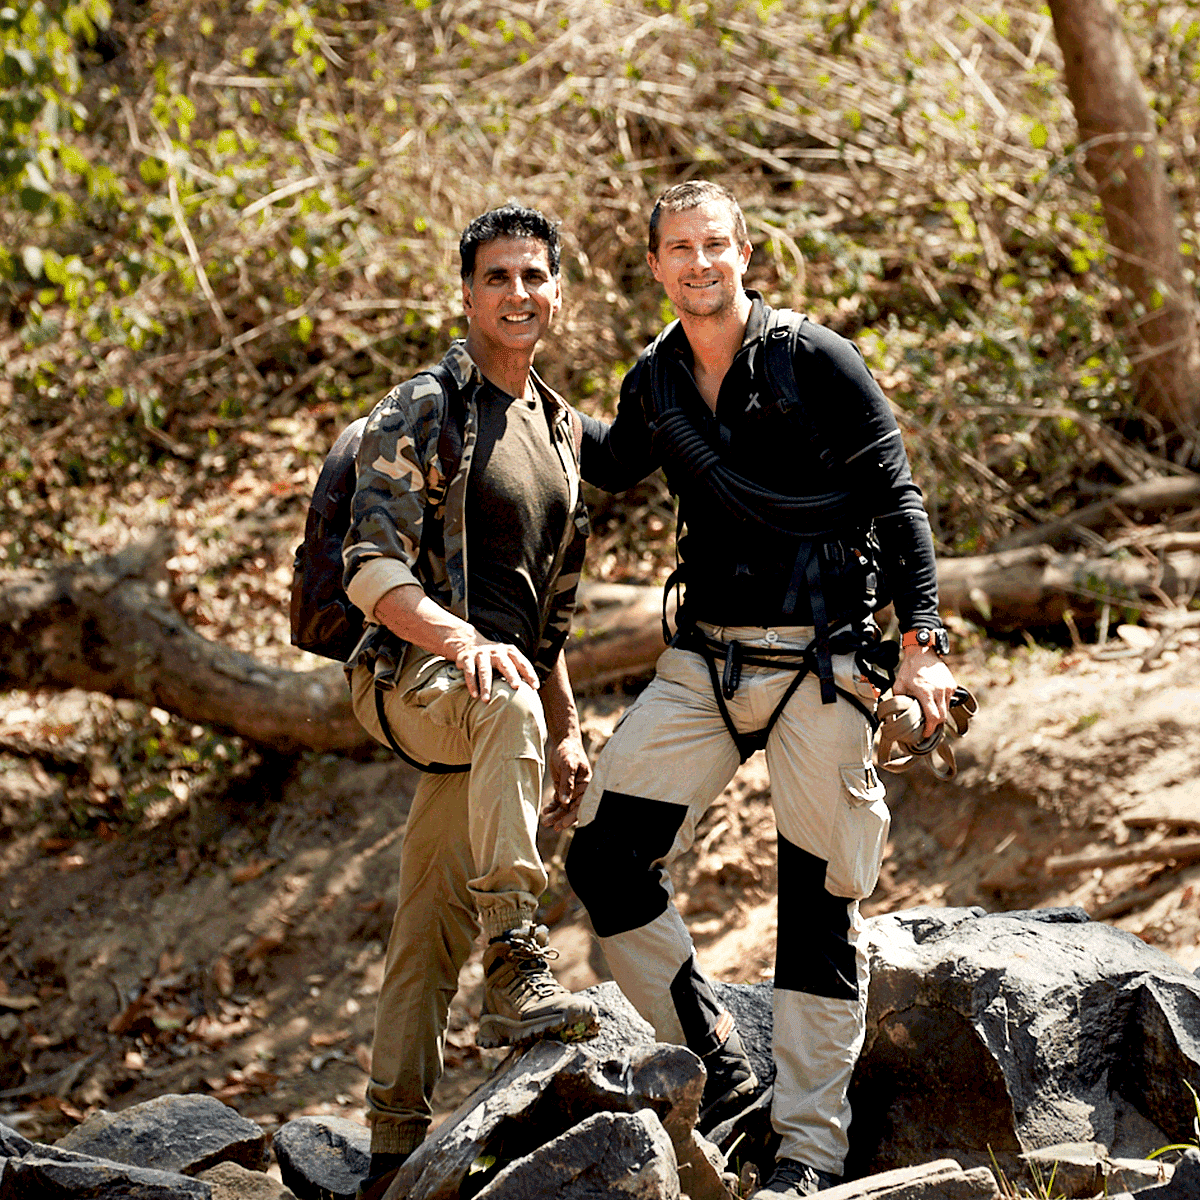 They Gave Me a Compass & Said Go Find Bear Grylls: Akshay Kumar